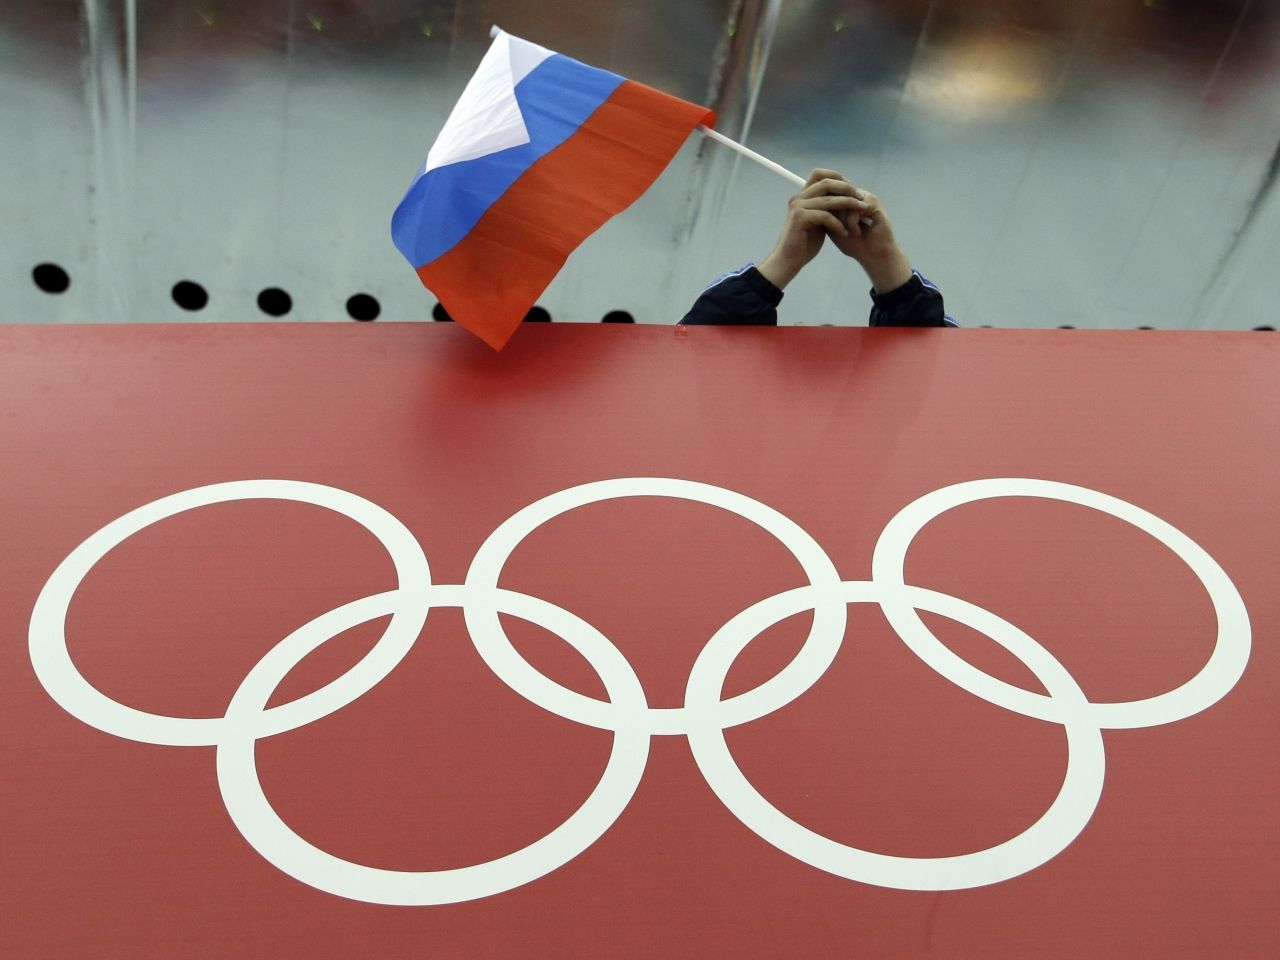 Russia has once again been accused of allowing its athletes to use performance enhancing drugs, image via AP